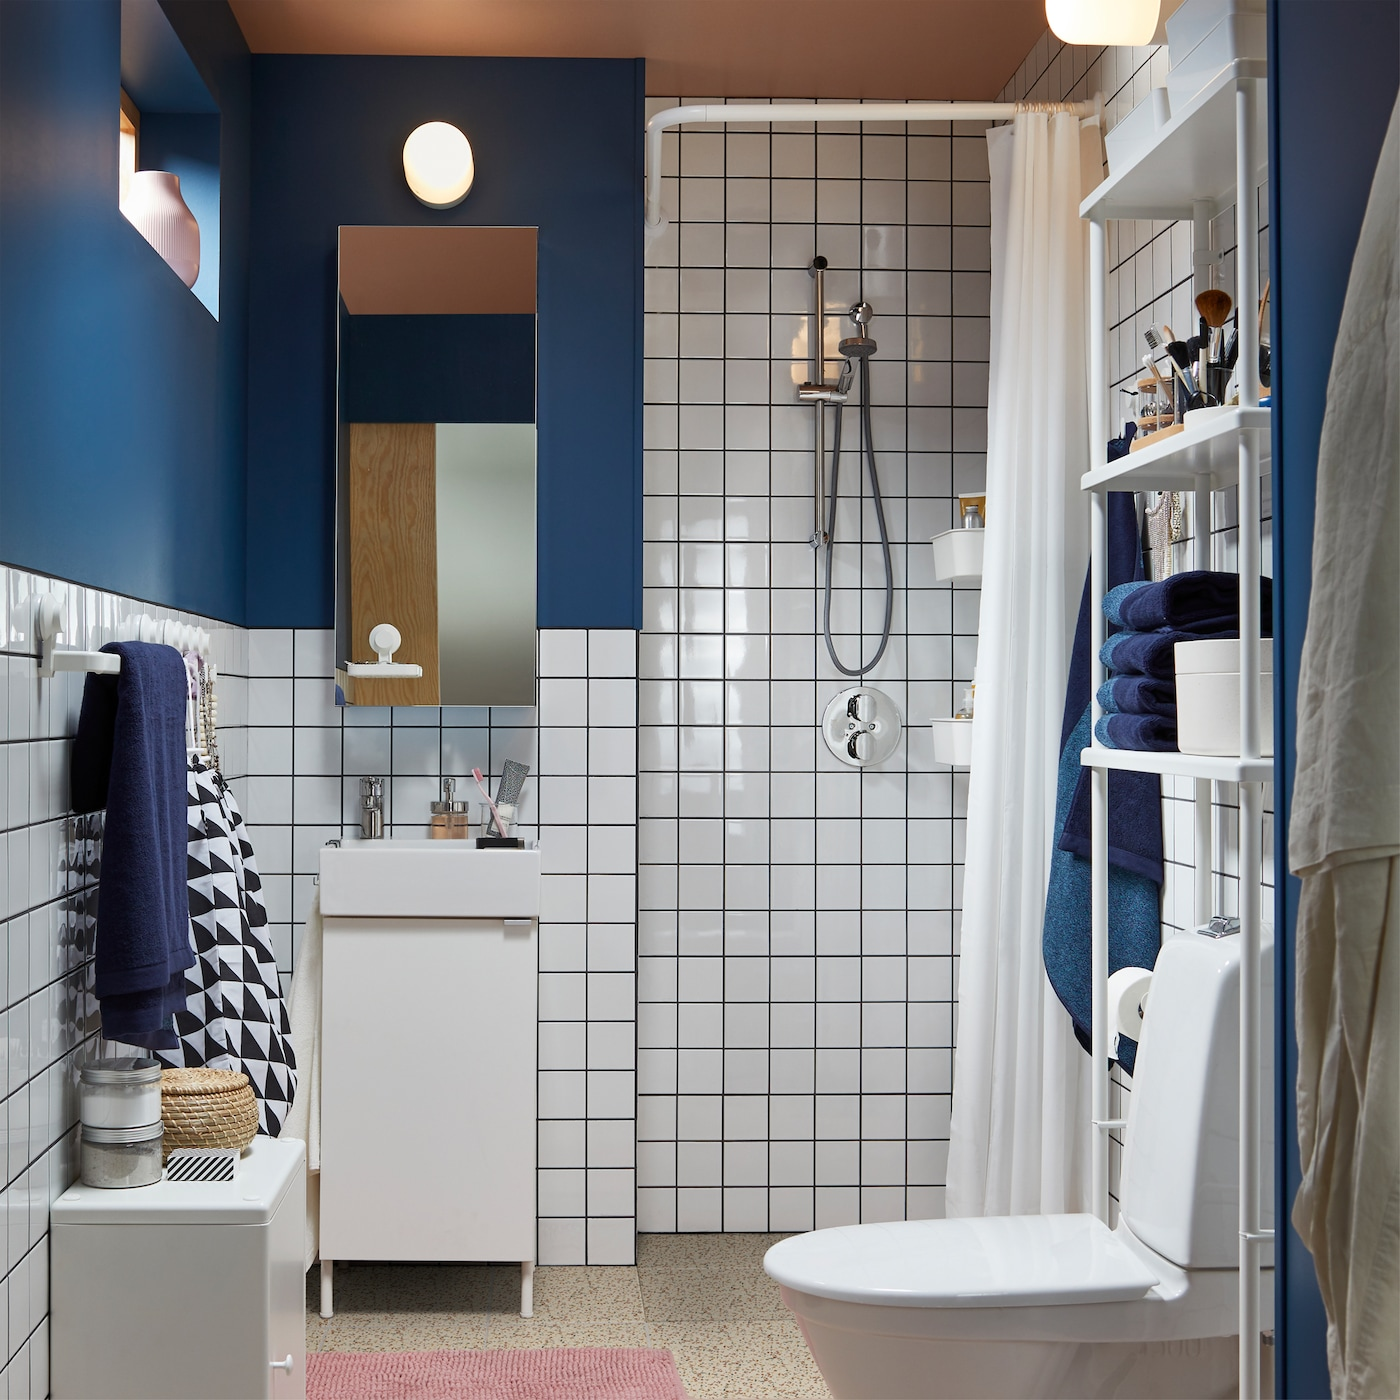 A high-end bathroom look at a low price - IKEA CA